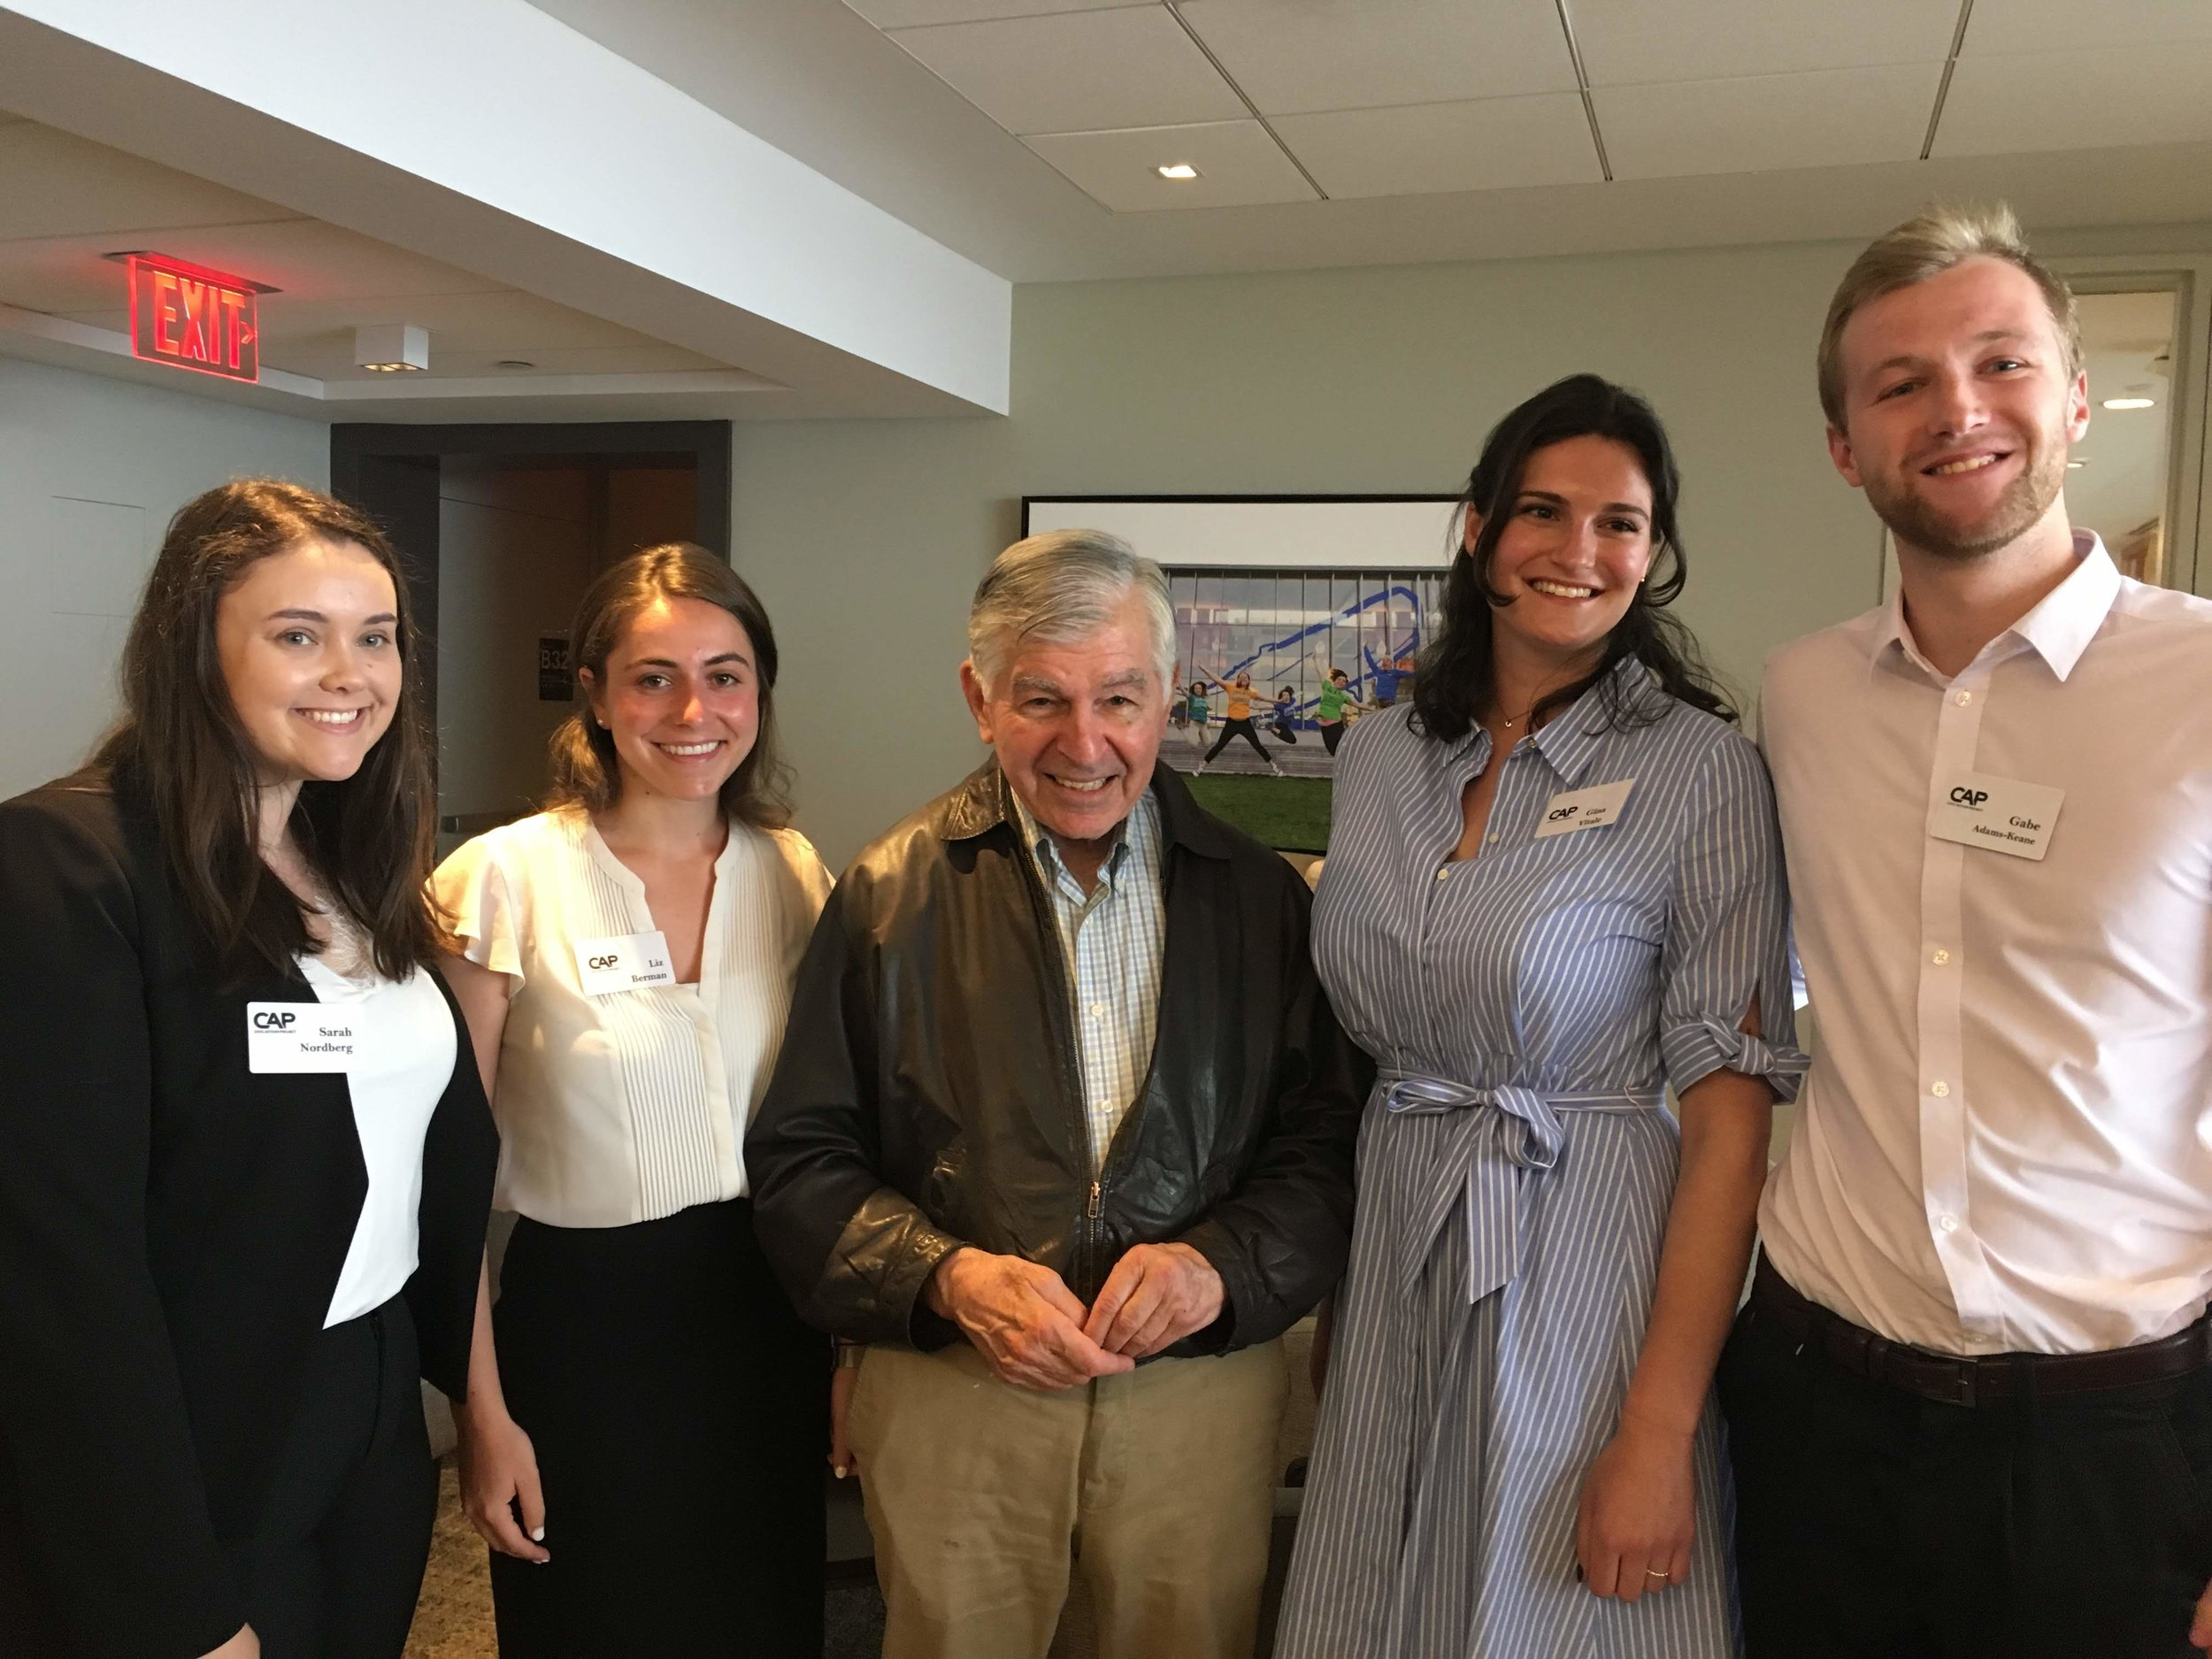 Former Governor and Presidential Candidate Michael Dukakis with UMass Amherst Fellows, (from left) Sarah Nordberg, Liz Berman, Gina Vitale, and Gabe Adams-Keane on June 5th.